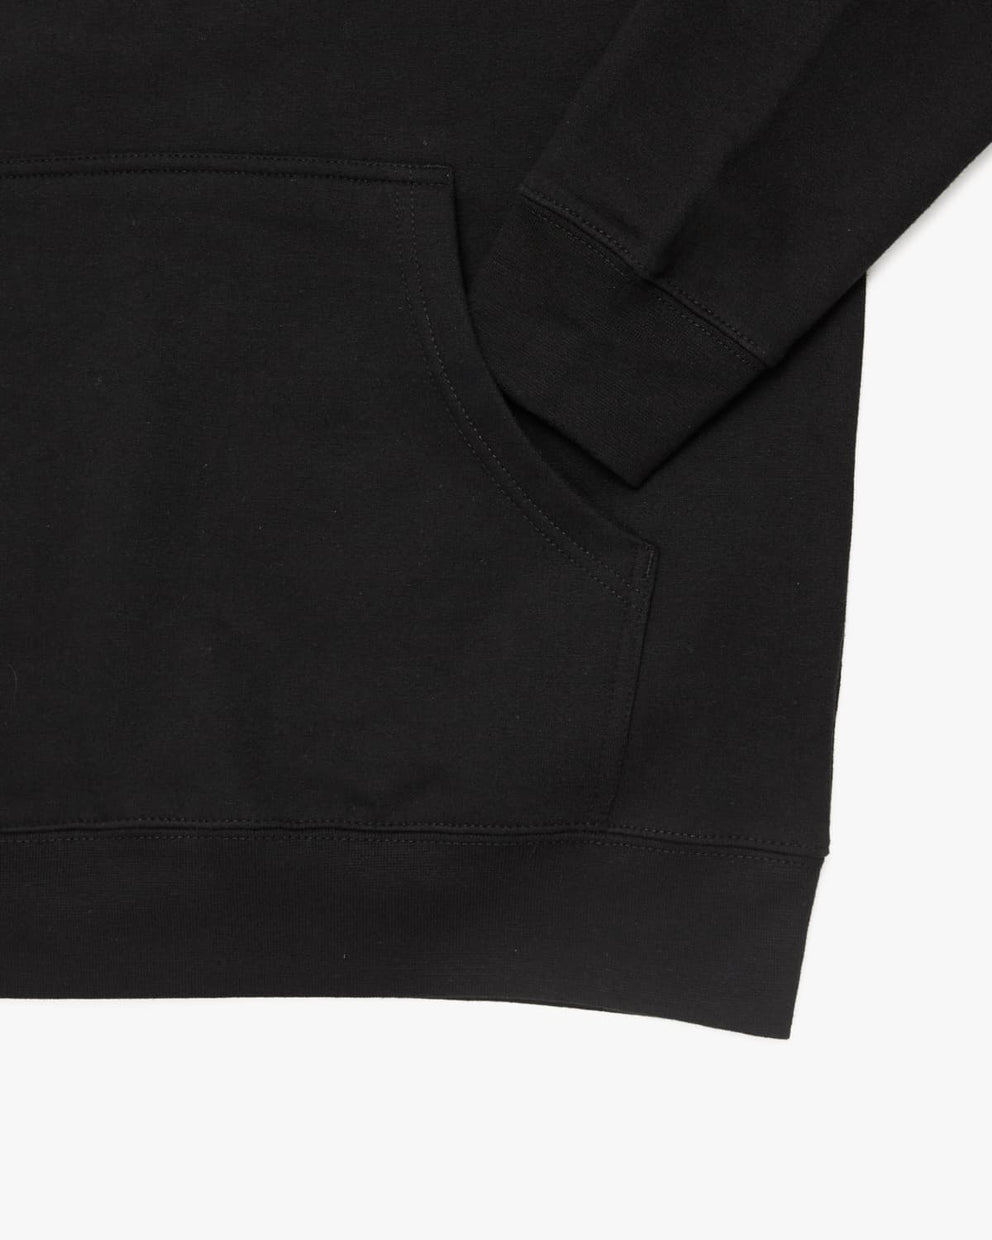 'Cross' Embroidered Pull Over Hoodie - Black